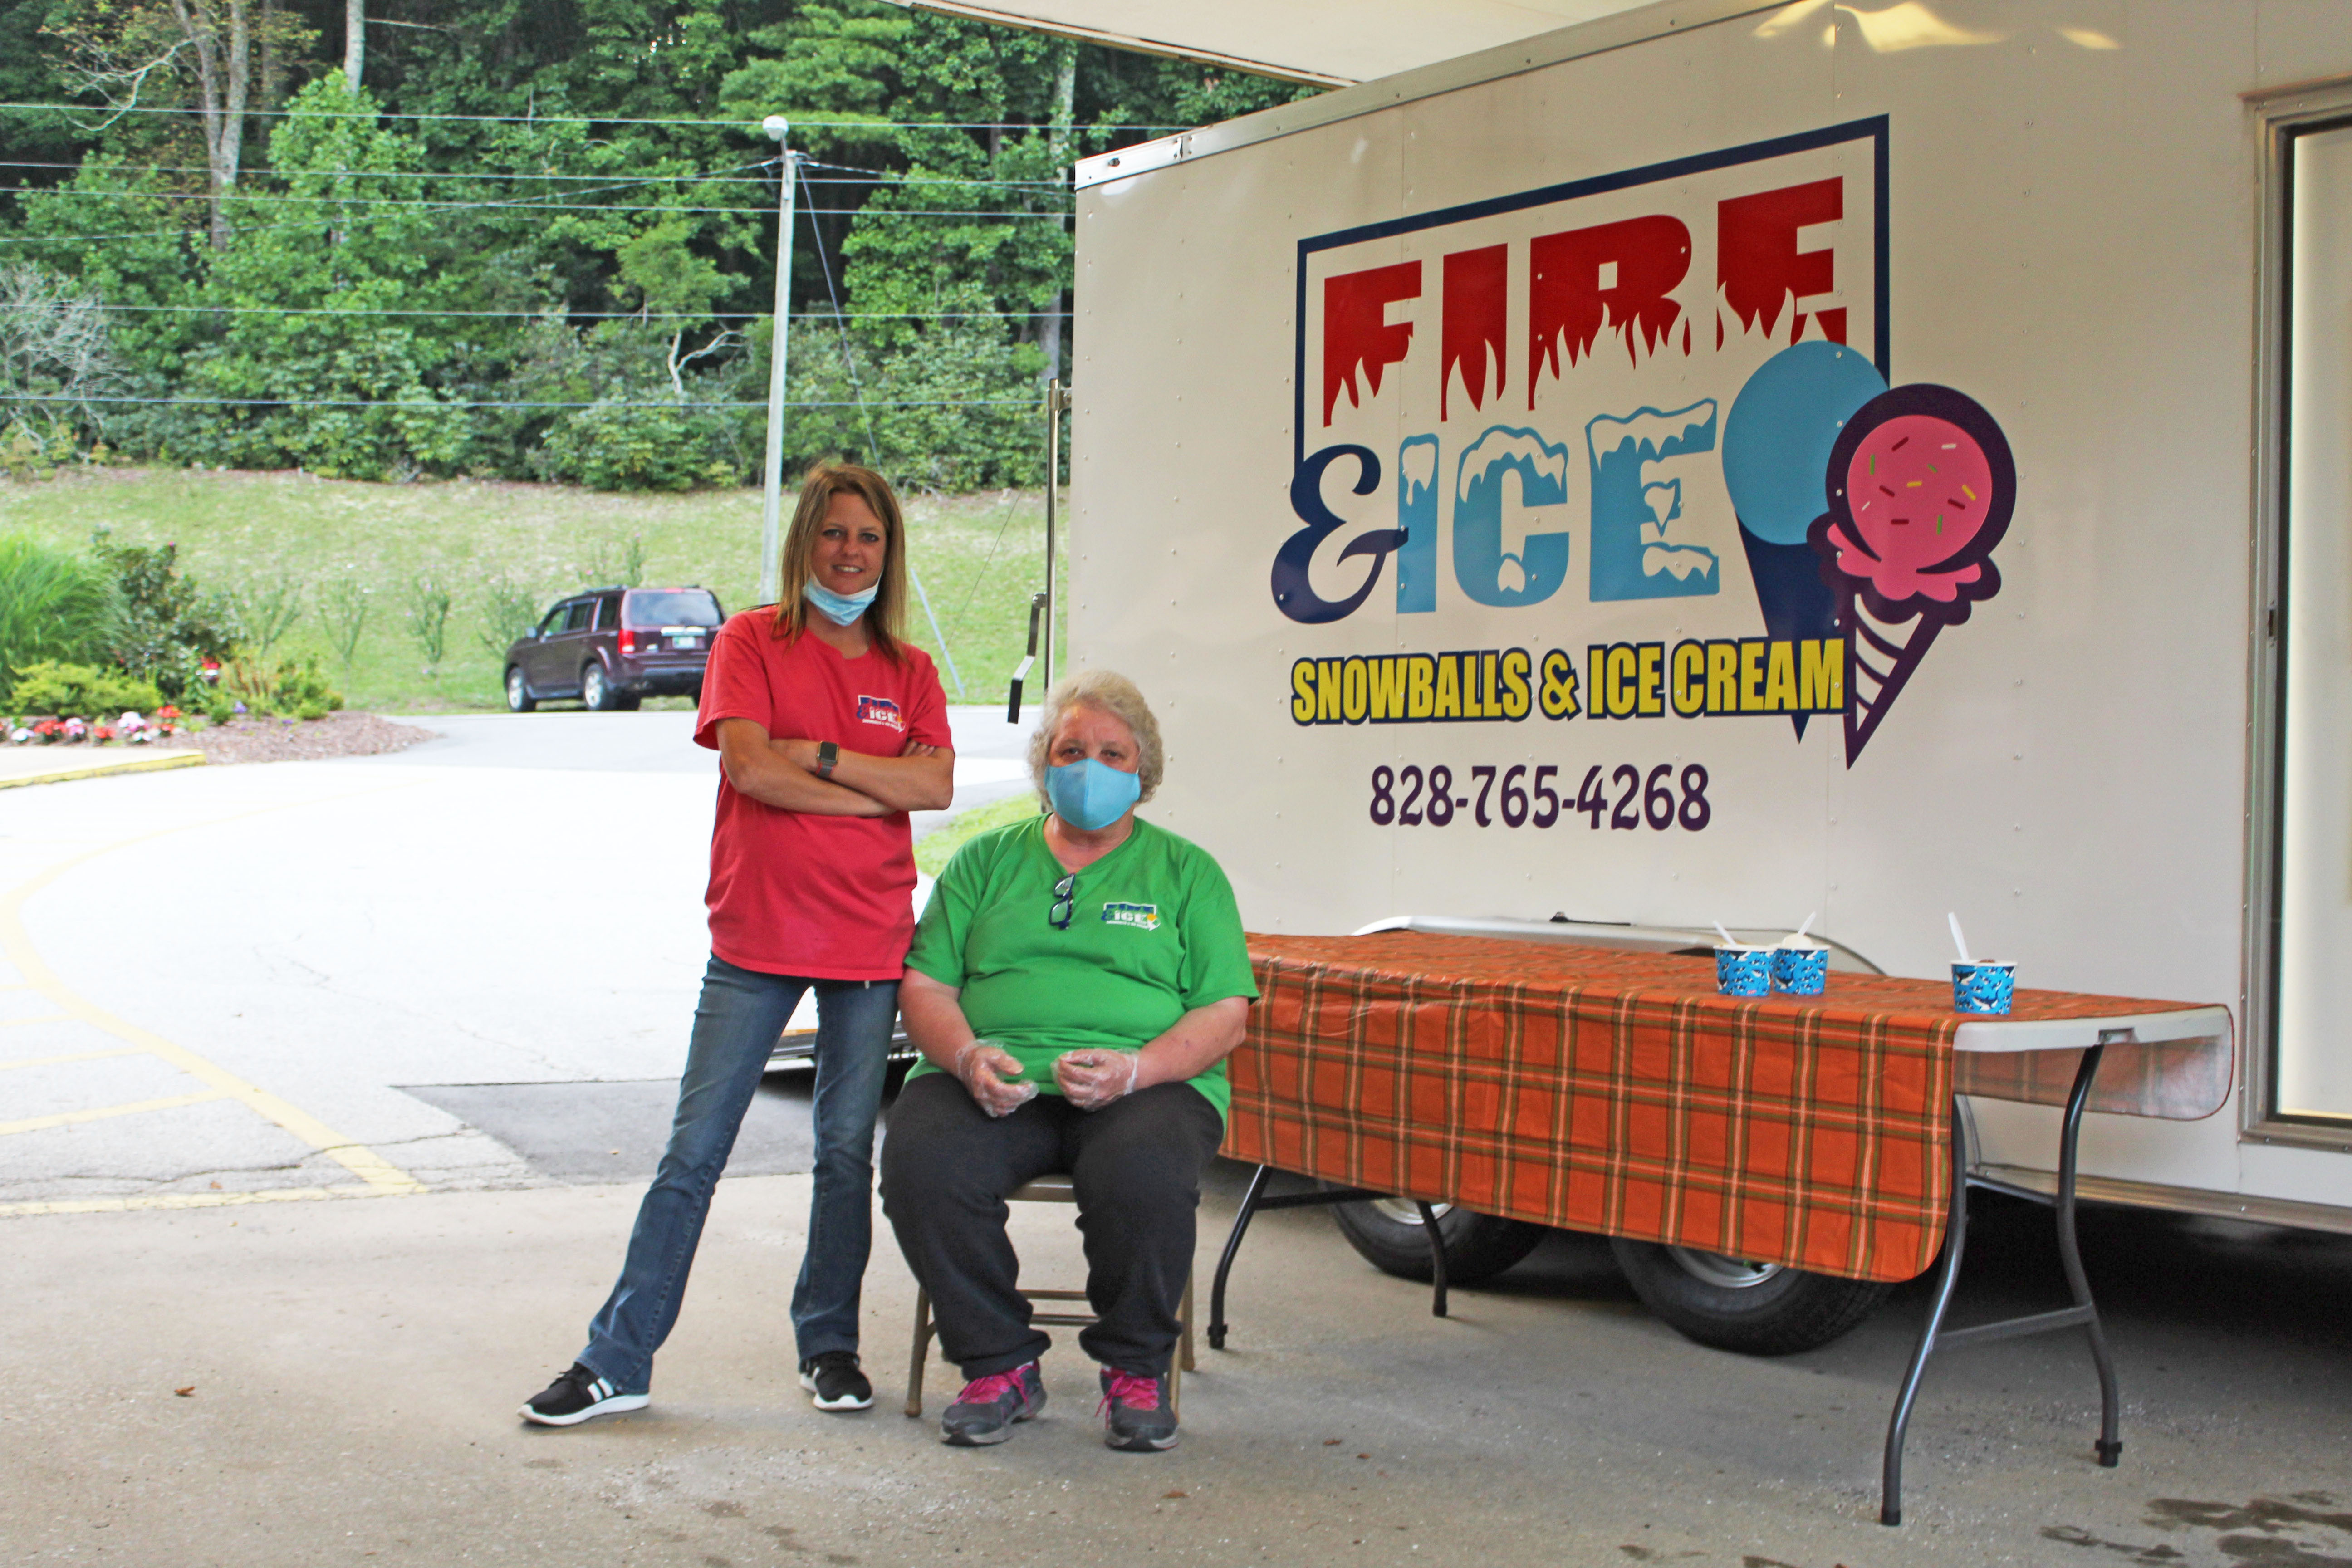 Employees of Fire & Ice Snowballs & Ice Cream sit ready for business at the Brian Center on Thursday, Aug. 20 during a special fireworks show for the seniors. (MNJ Photo/Juliana Walker)